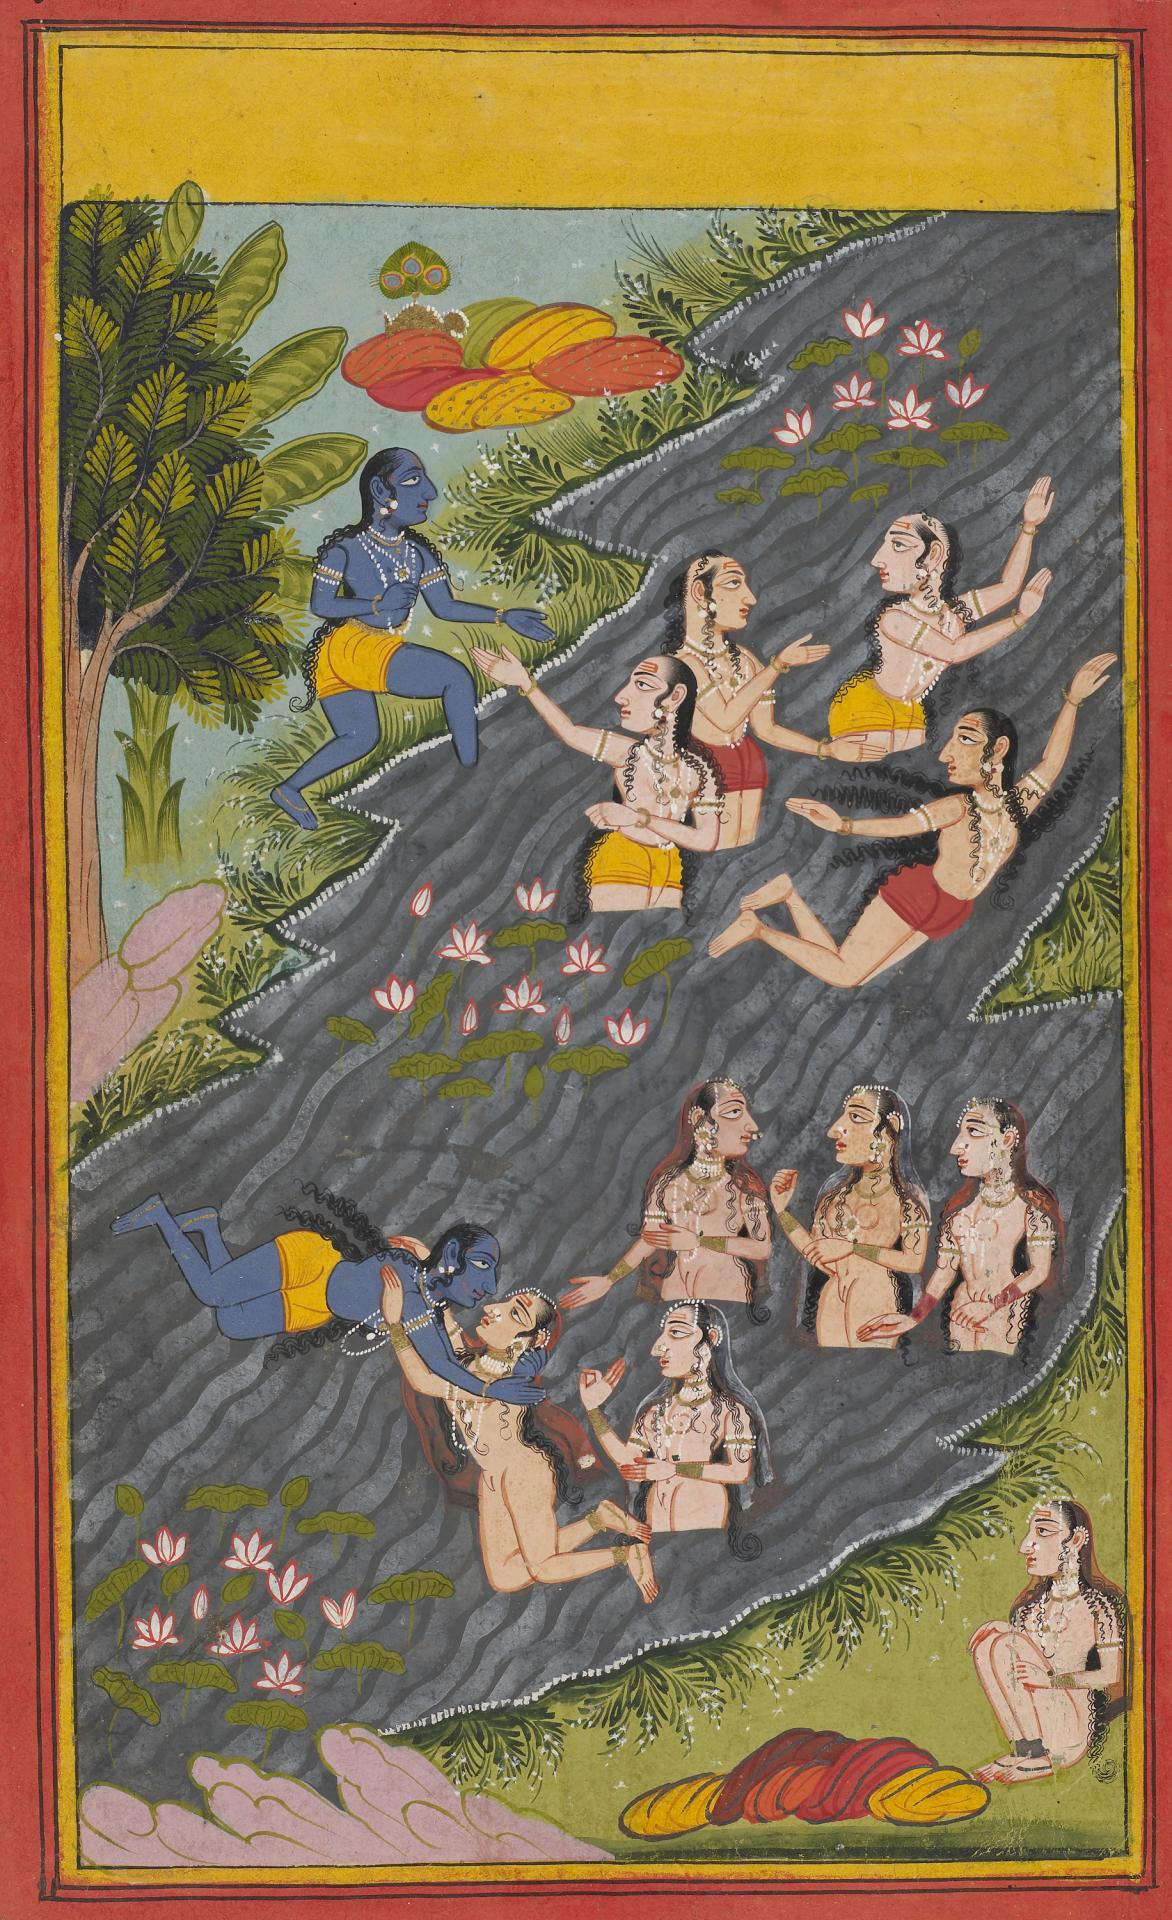 Krishna enters the river Jumna